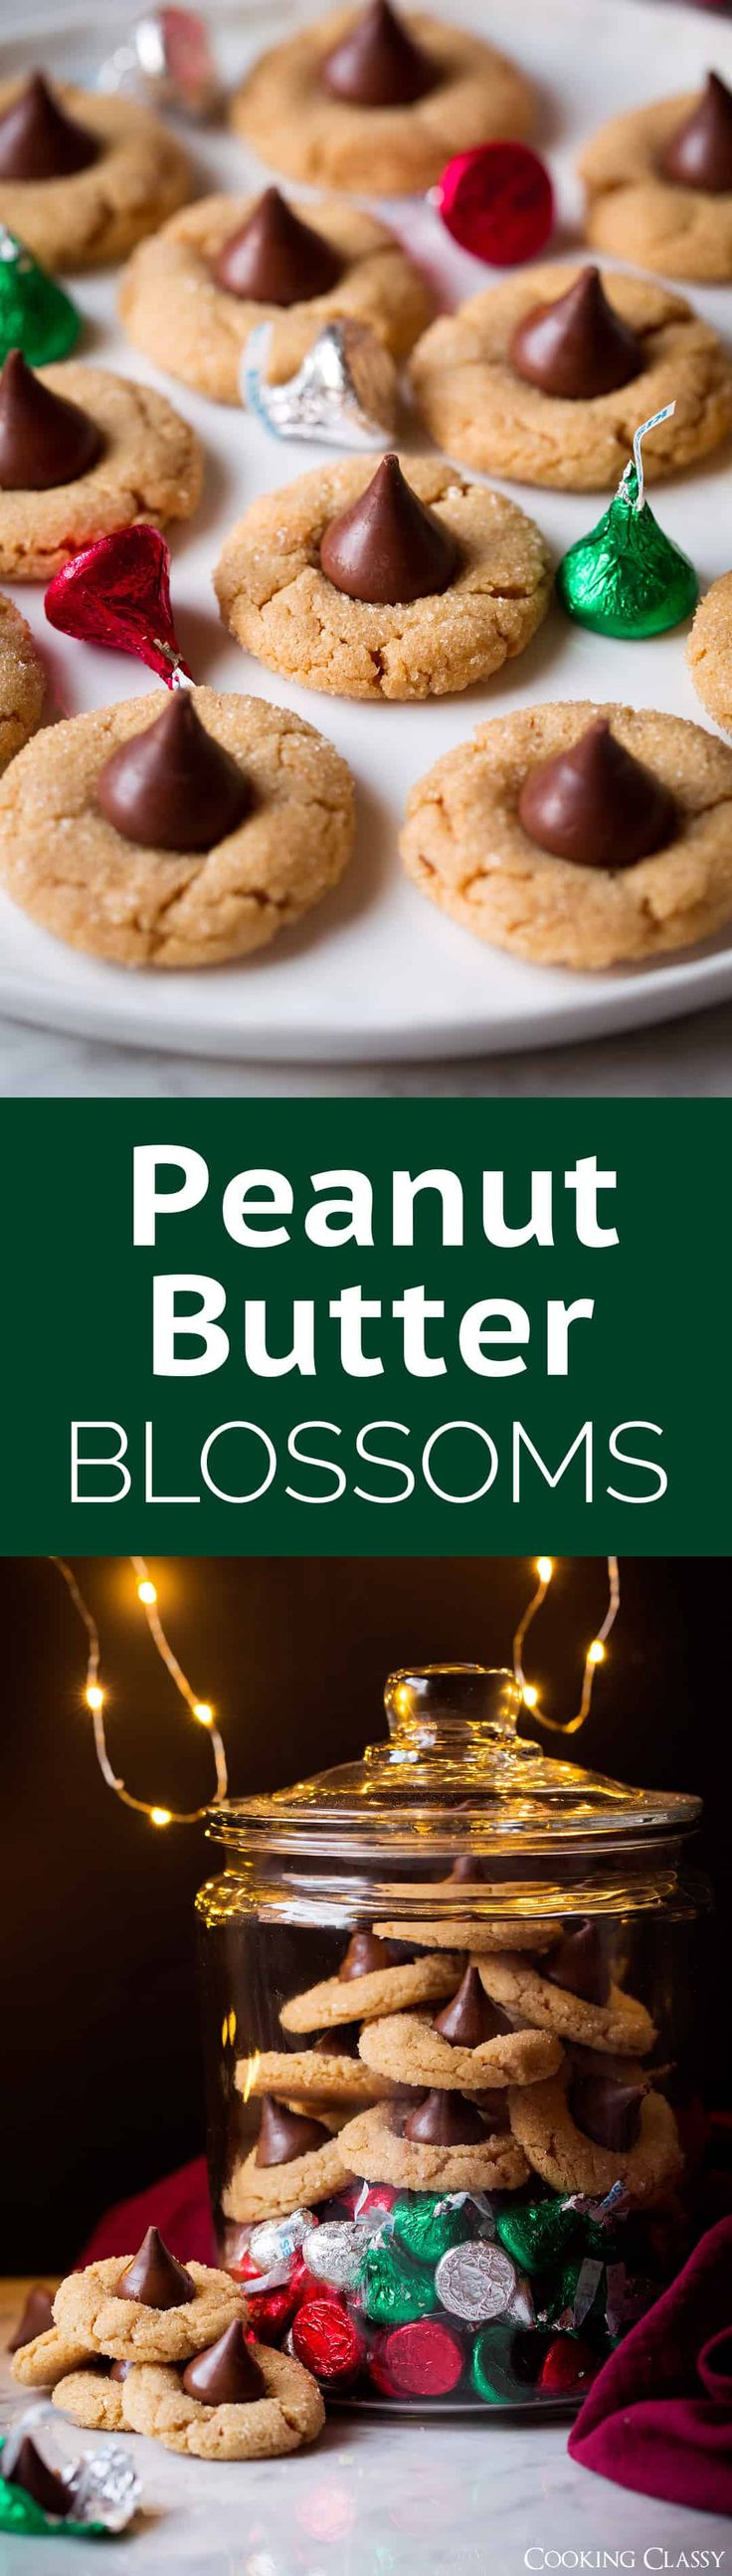 Peanut Butter Blossoms - a holiday MUST! Soft and tender and perfectly peanut buttery! Plus isn't that milk chocolate and peanut butter combo just dreamy? via @cookingclassy